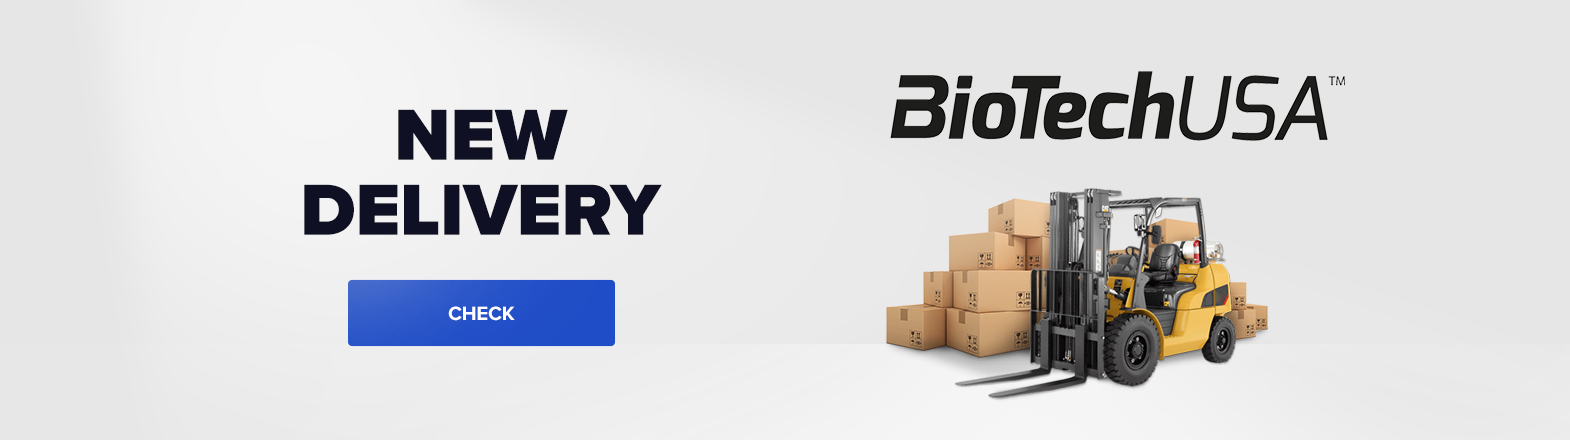 BioTech New Delivery